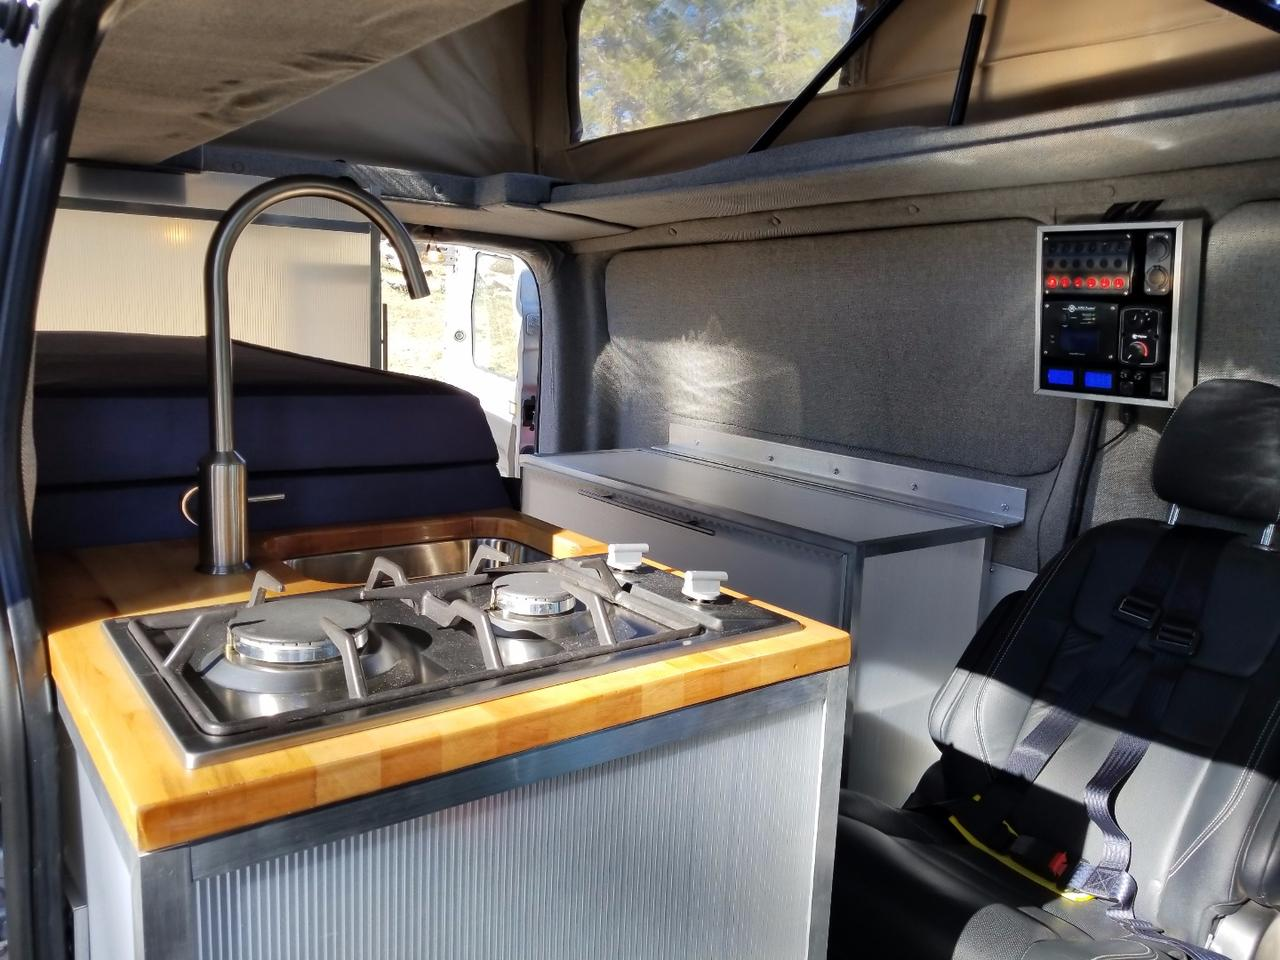 ModVans turns the Ford Transit into a modular, modern camper van